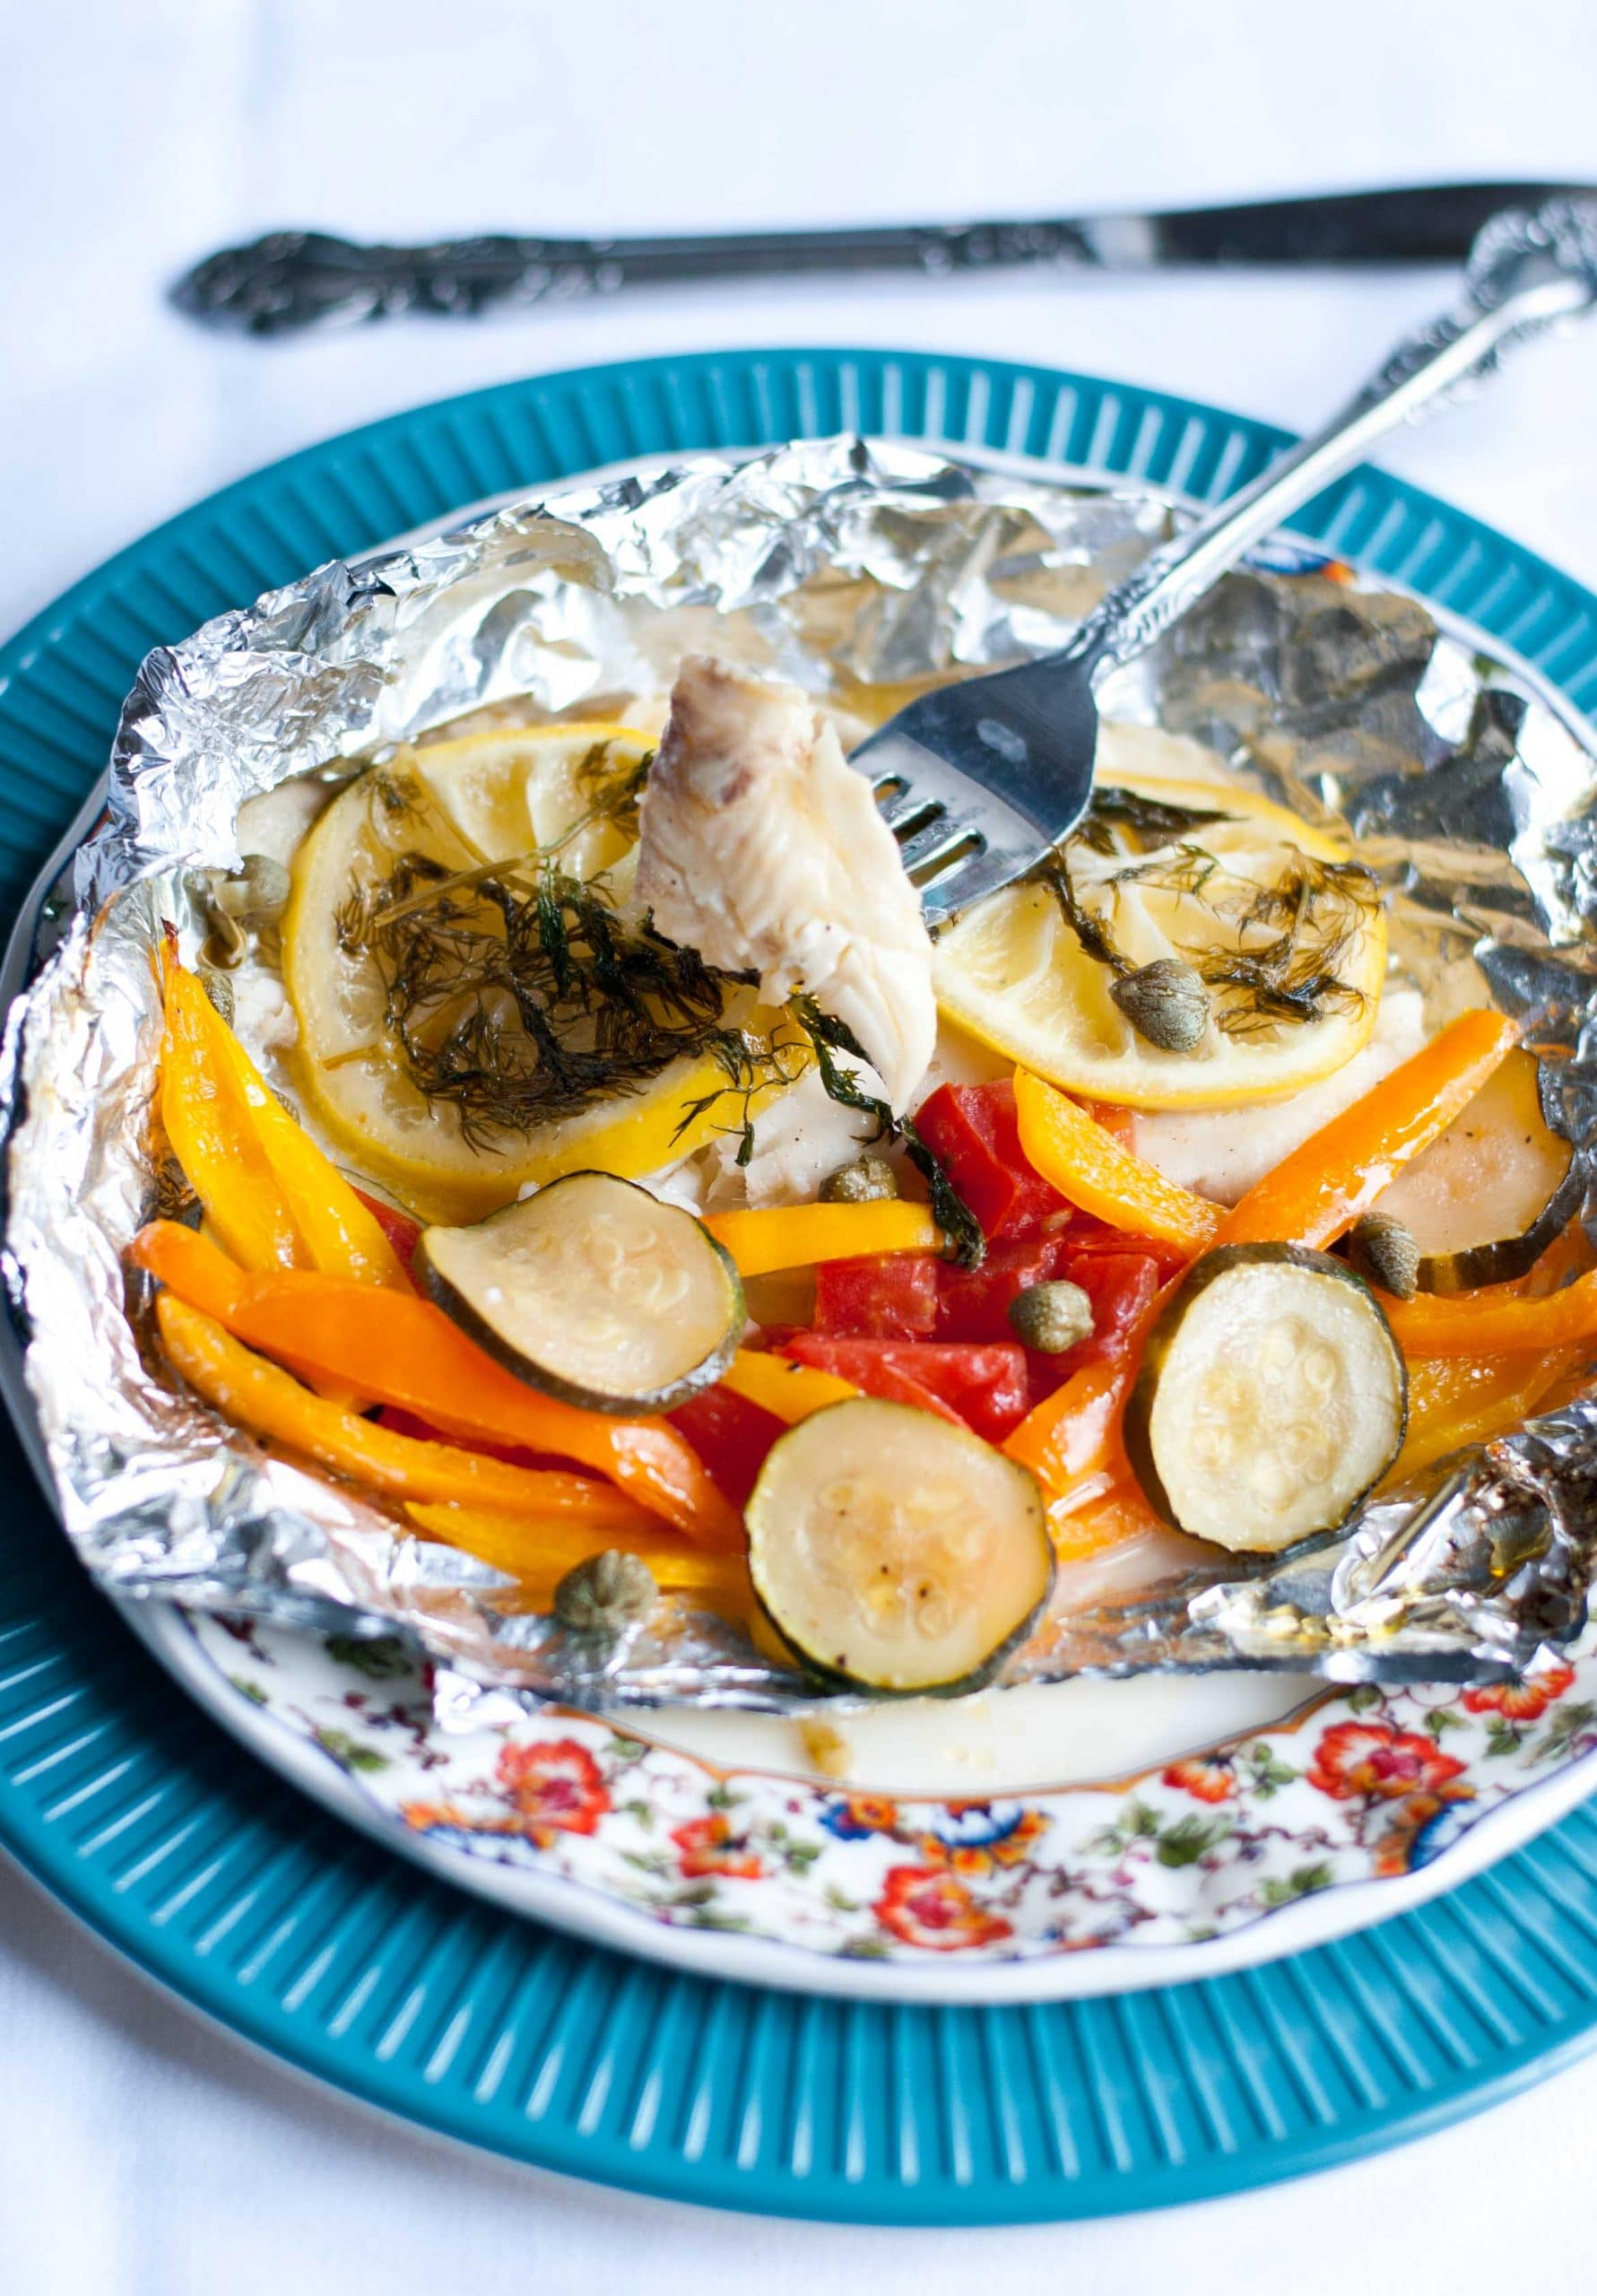 Grilled Lemon Tilapia in a Foil Packet | Neighborfoodblog.com